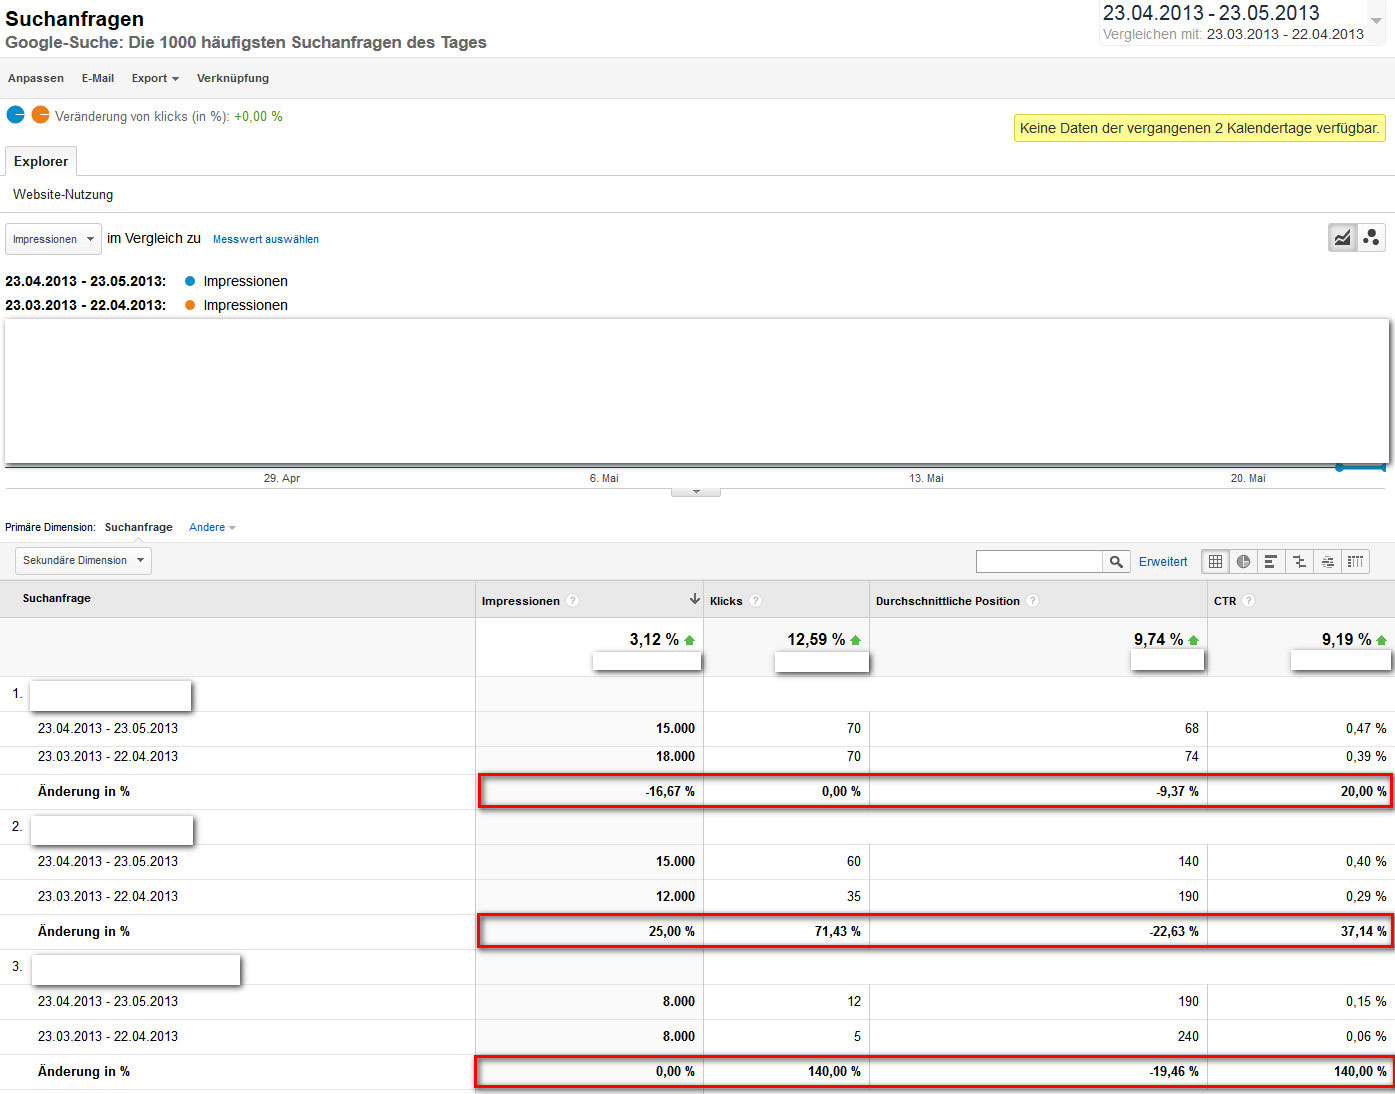 Google Analytics Suchanfragen neu